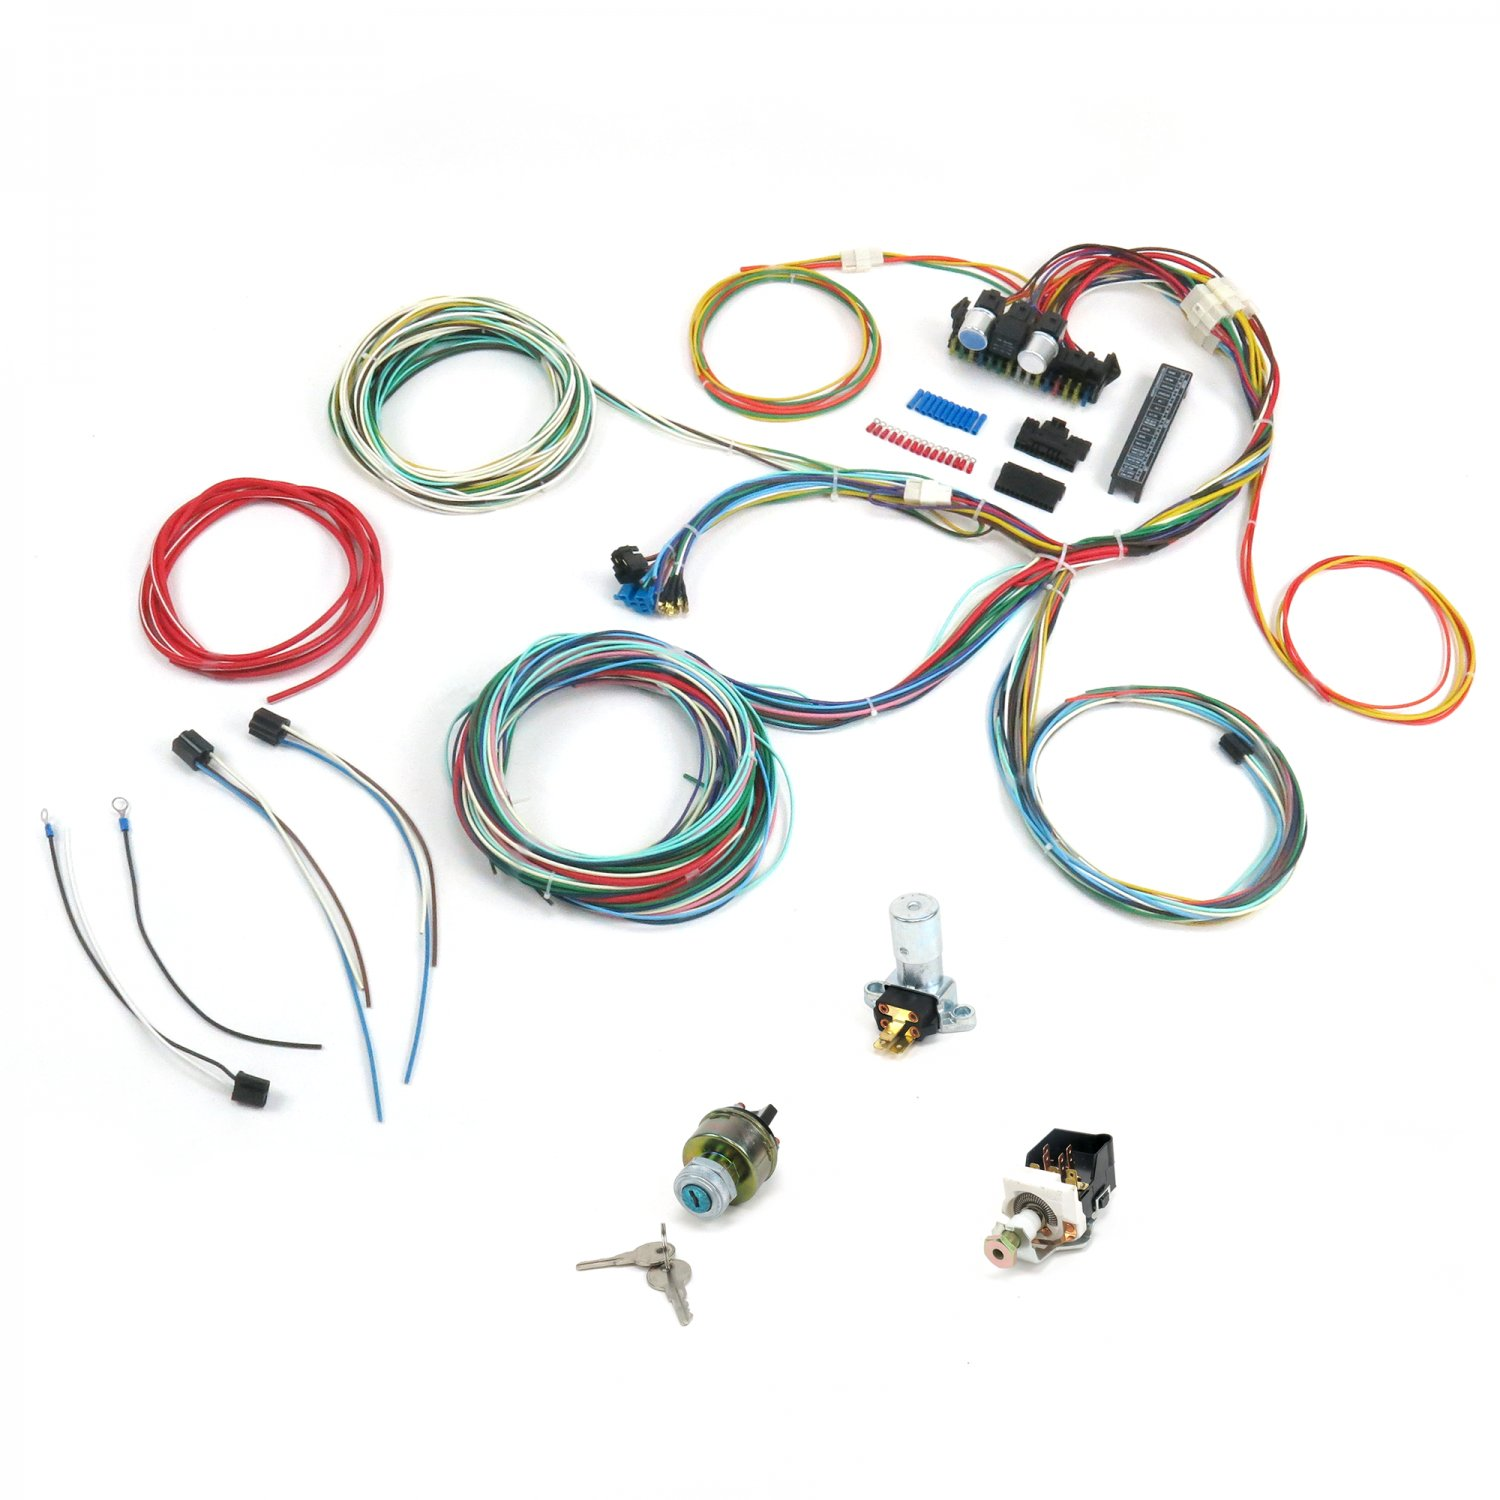 1500 1964 1970 ford mustang comet falcon wire harness upgrade kit 1965 mustang painless wiring harness at readyjetset.co